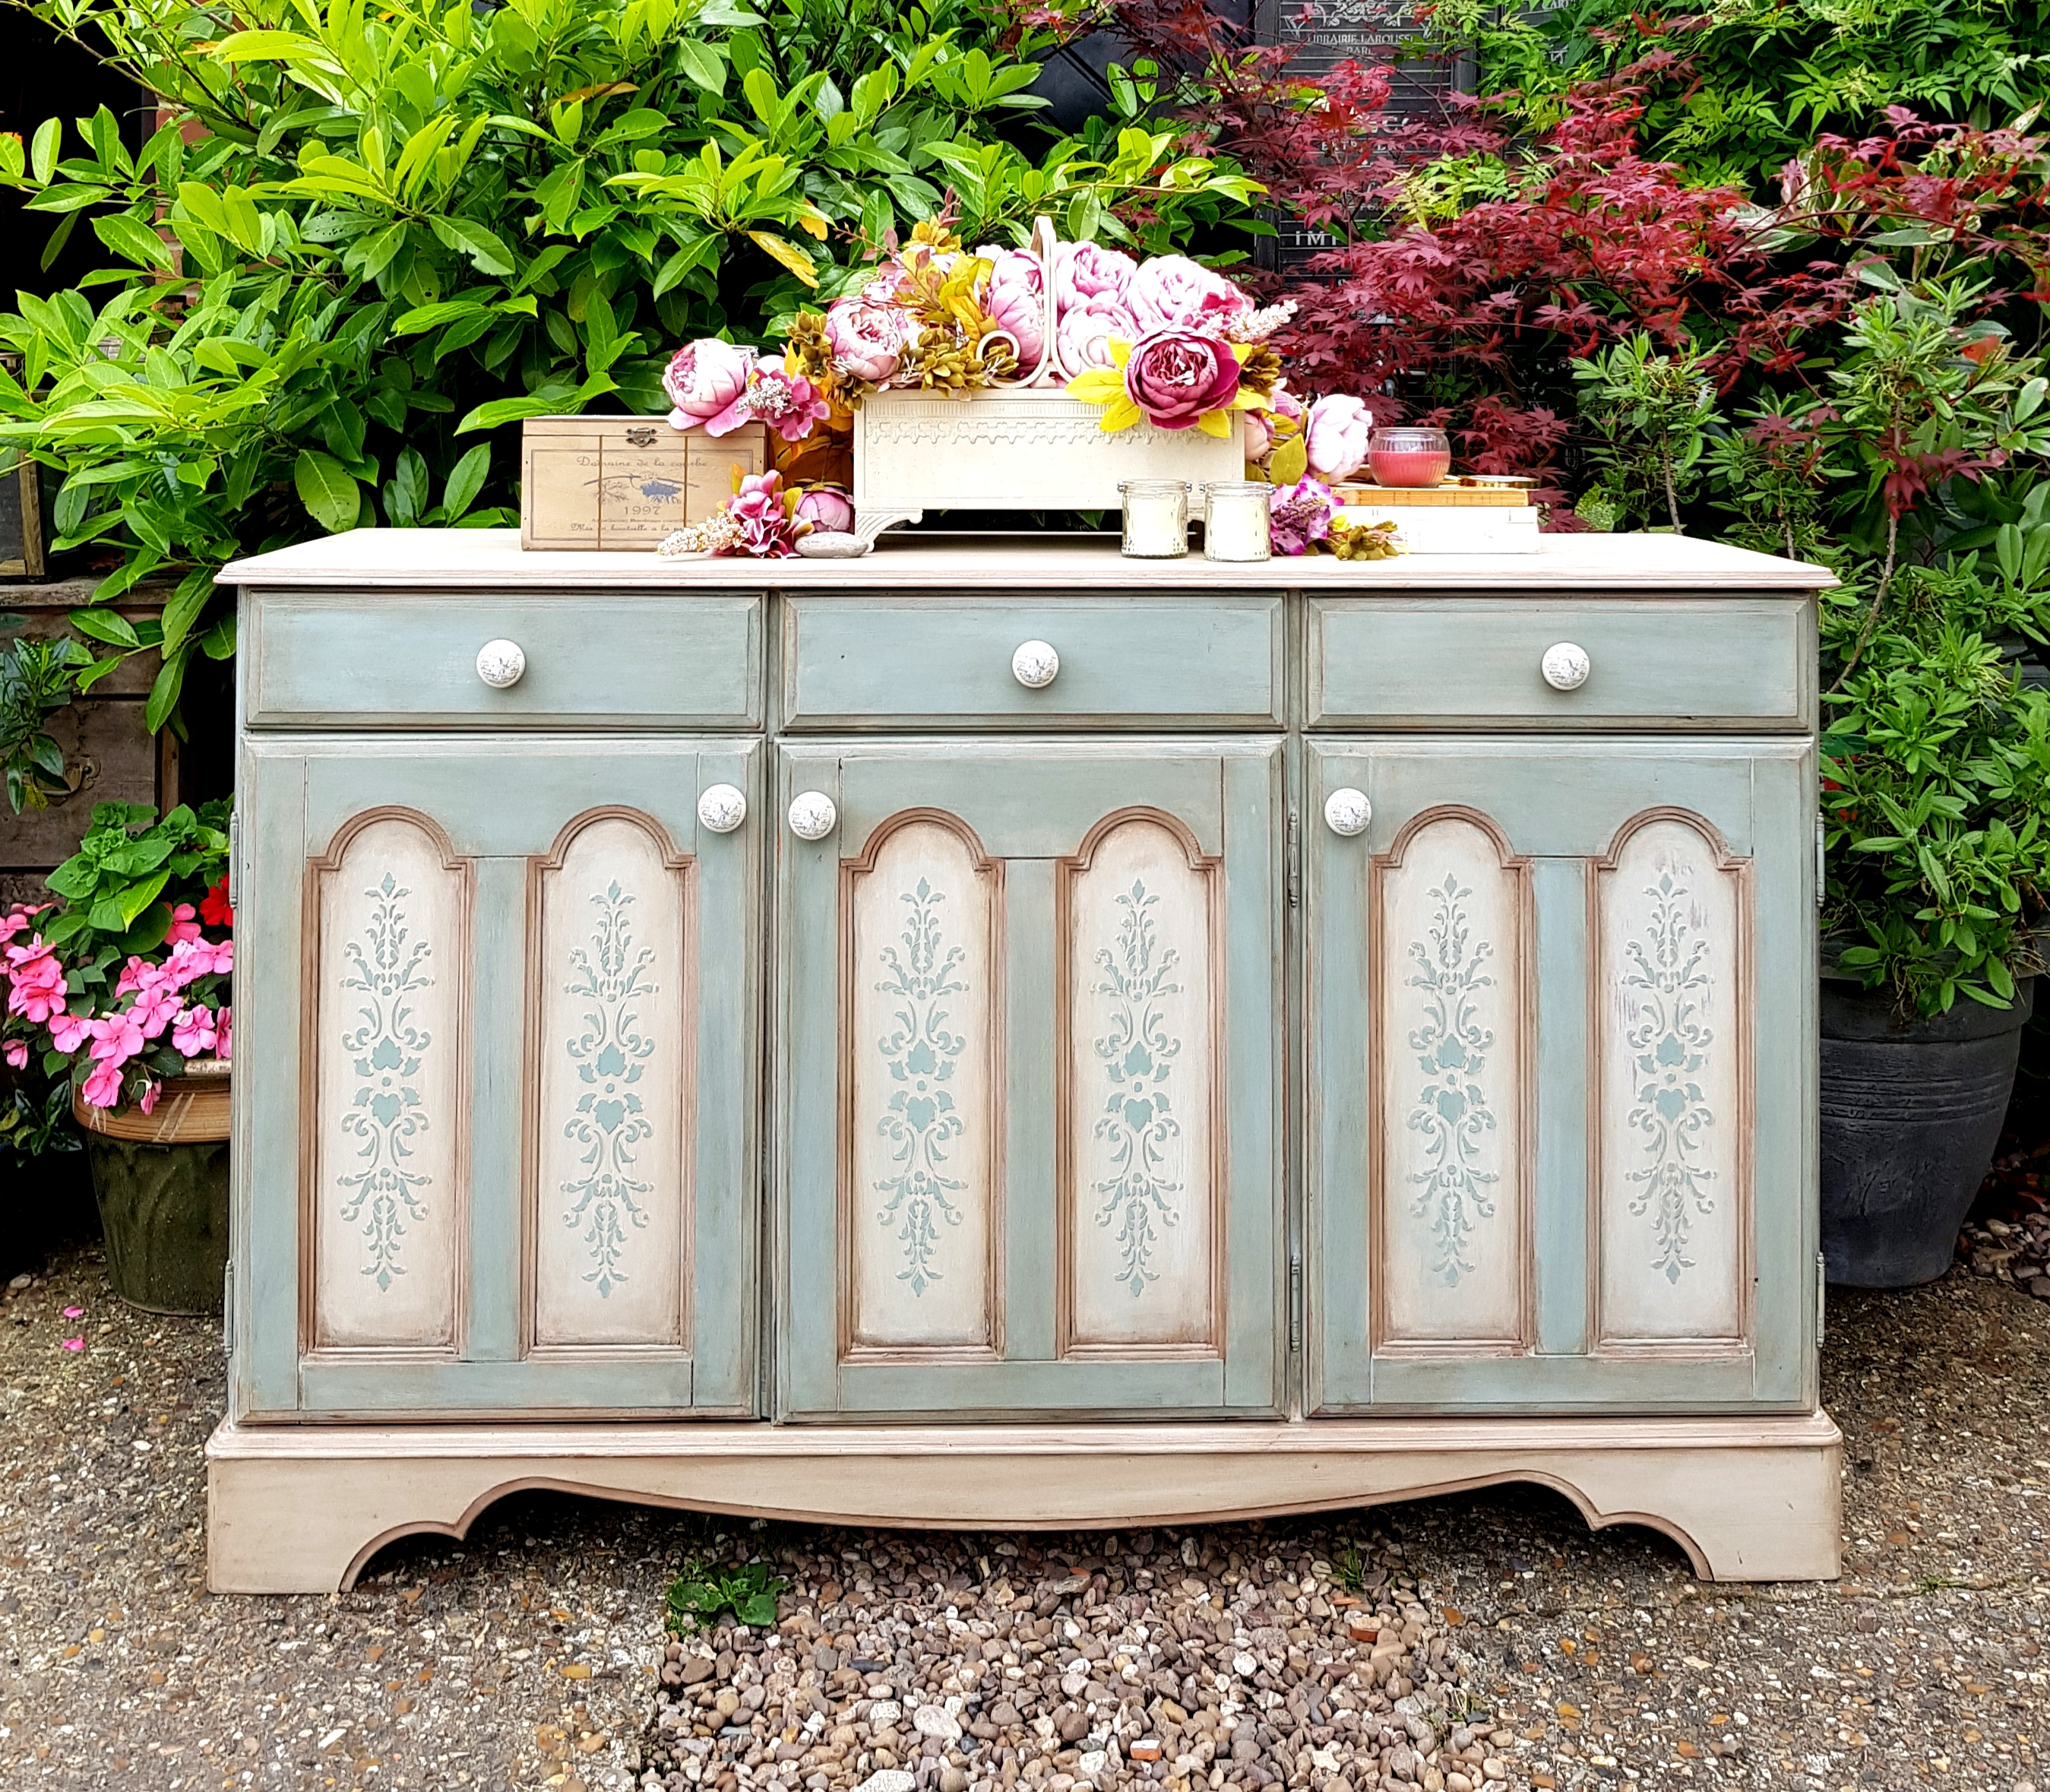 THE ROMANTIC SIDEBOARD